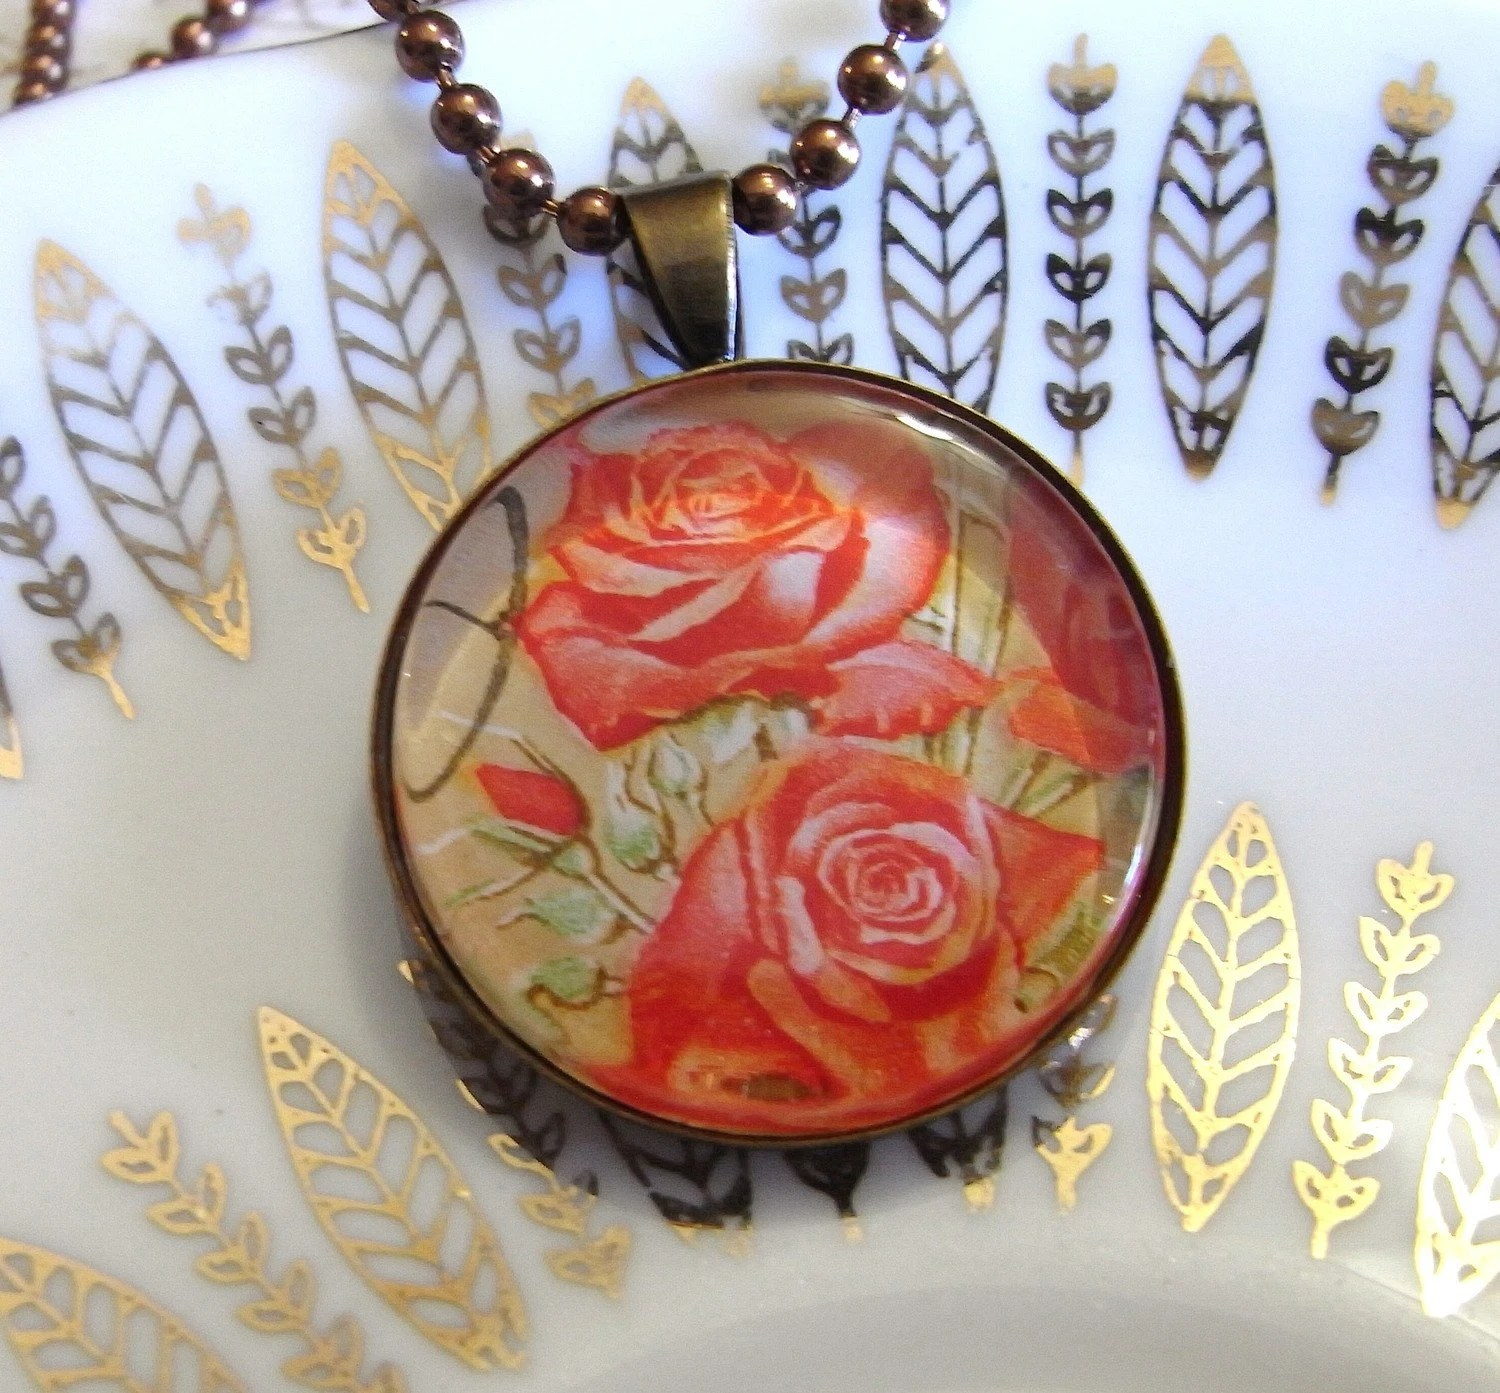 Rose Postage Stamp Jewelry. Altered Art Necklace. Handmade Starzyia on etsy